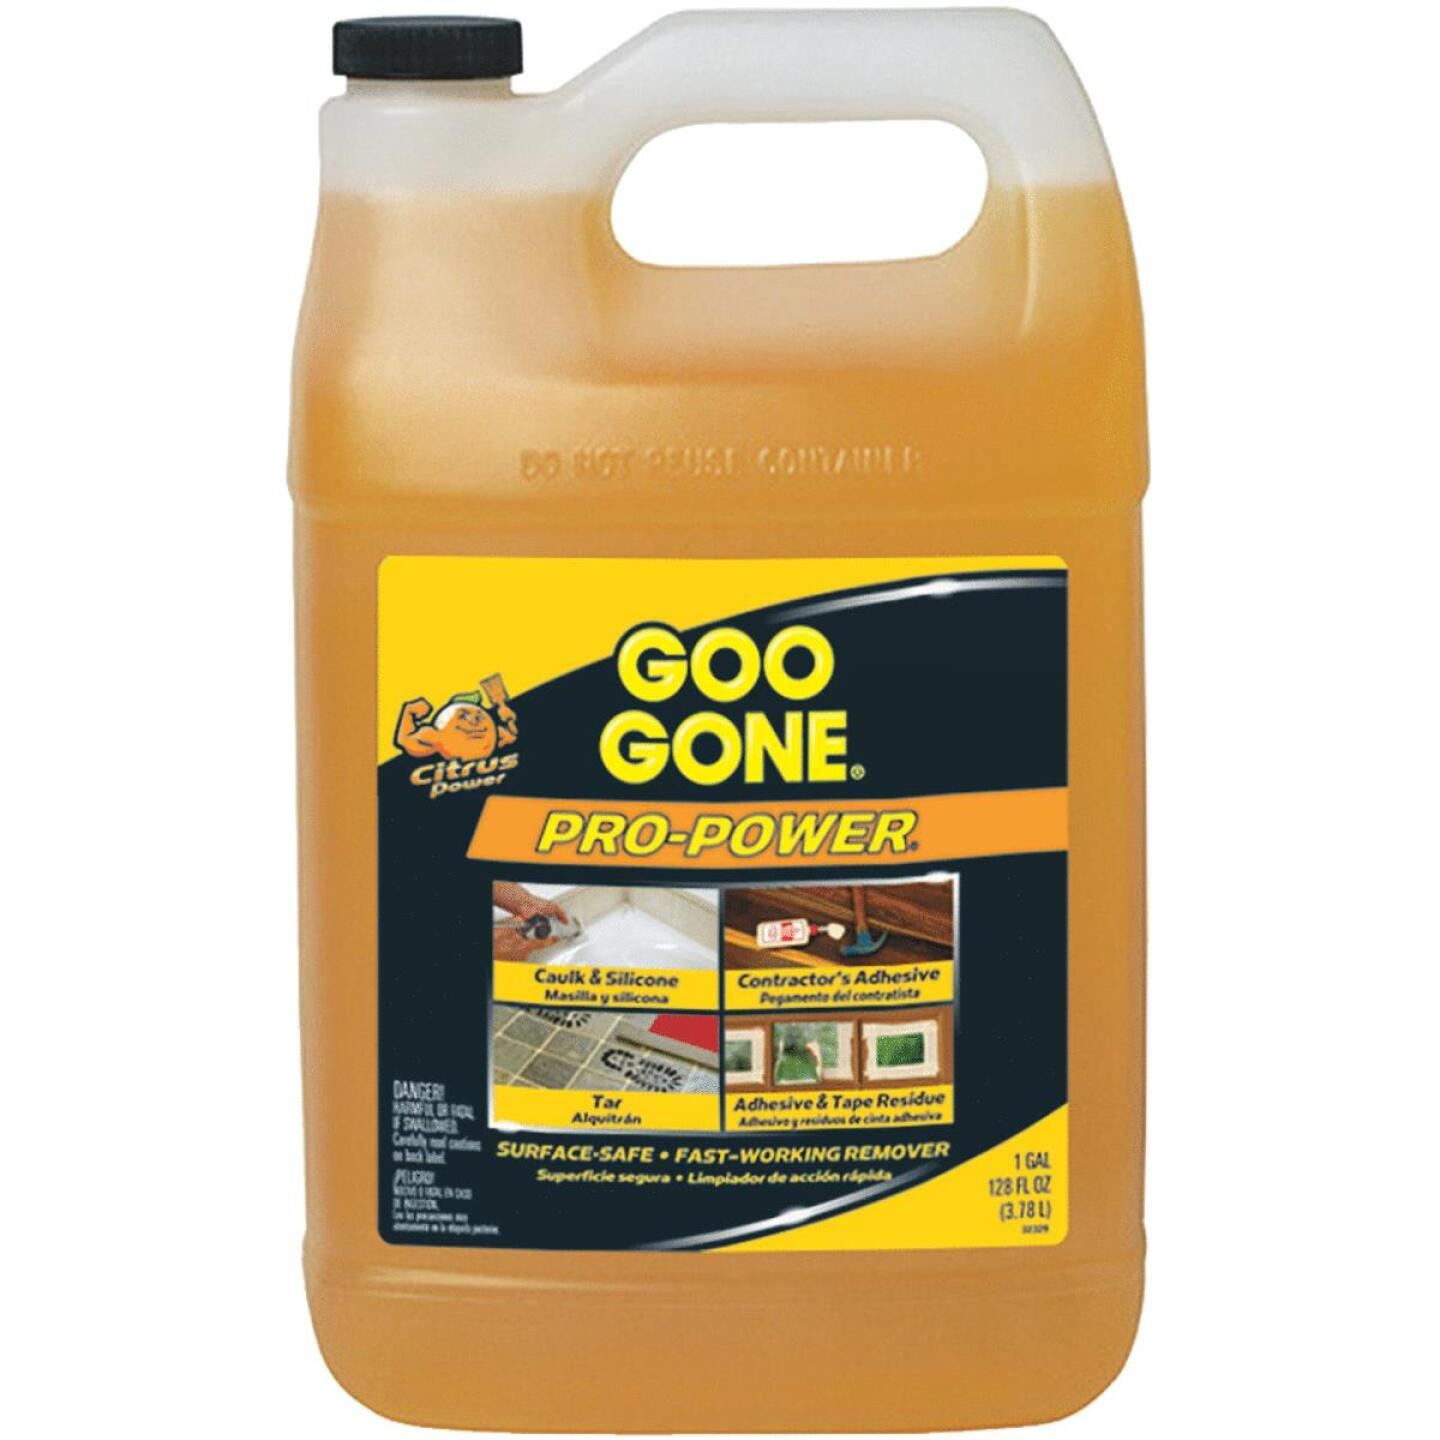 Goo Gone 1 Gal. Pro-Power Adhesive Remover Image 36